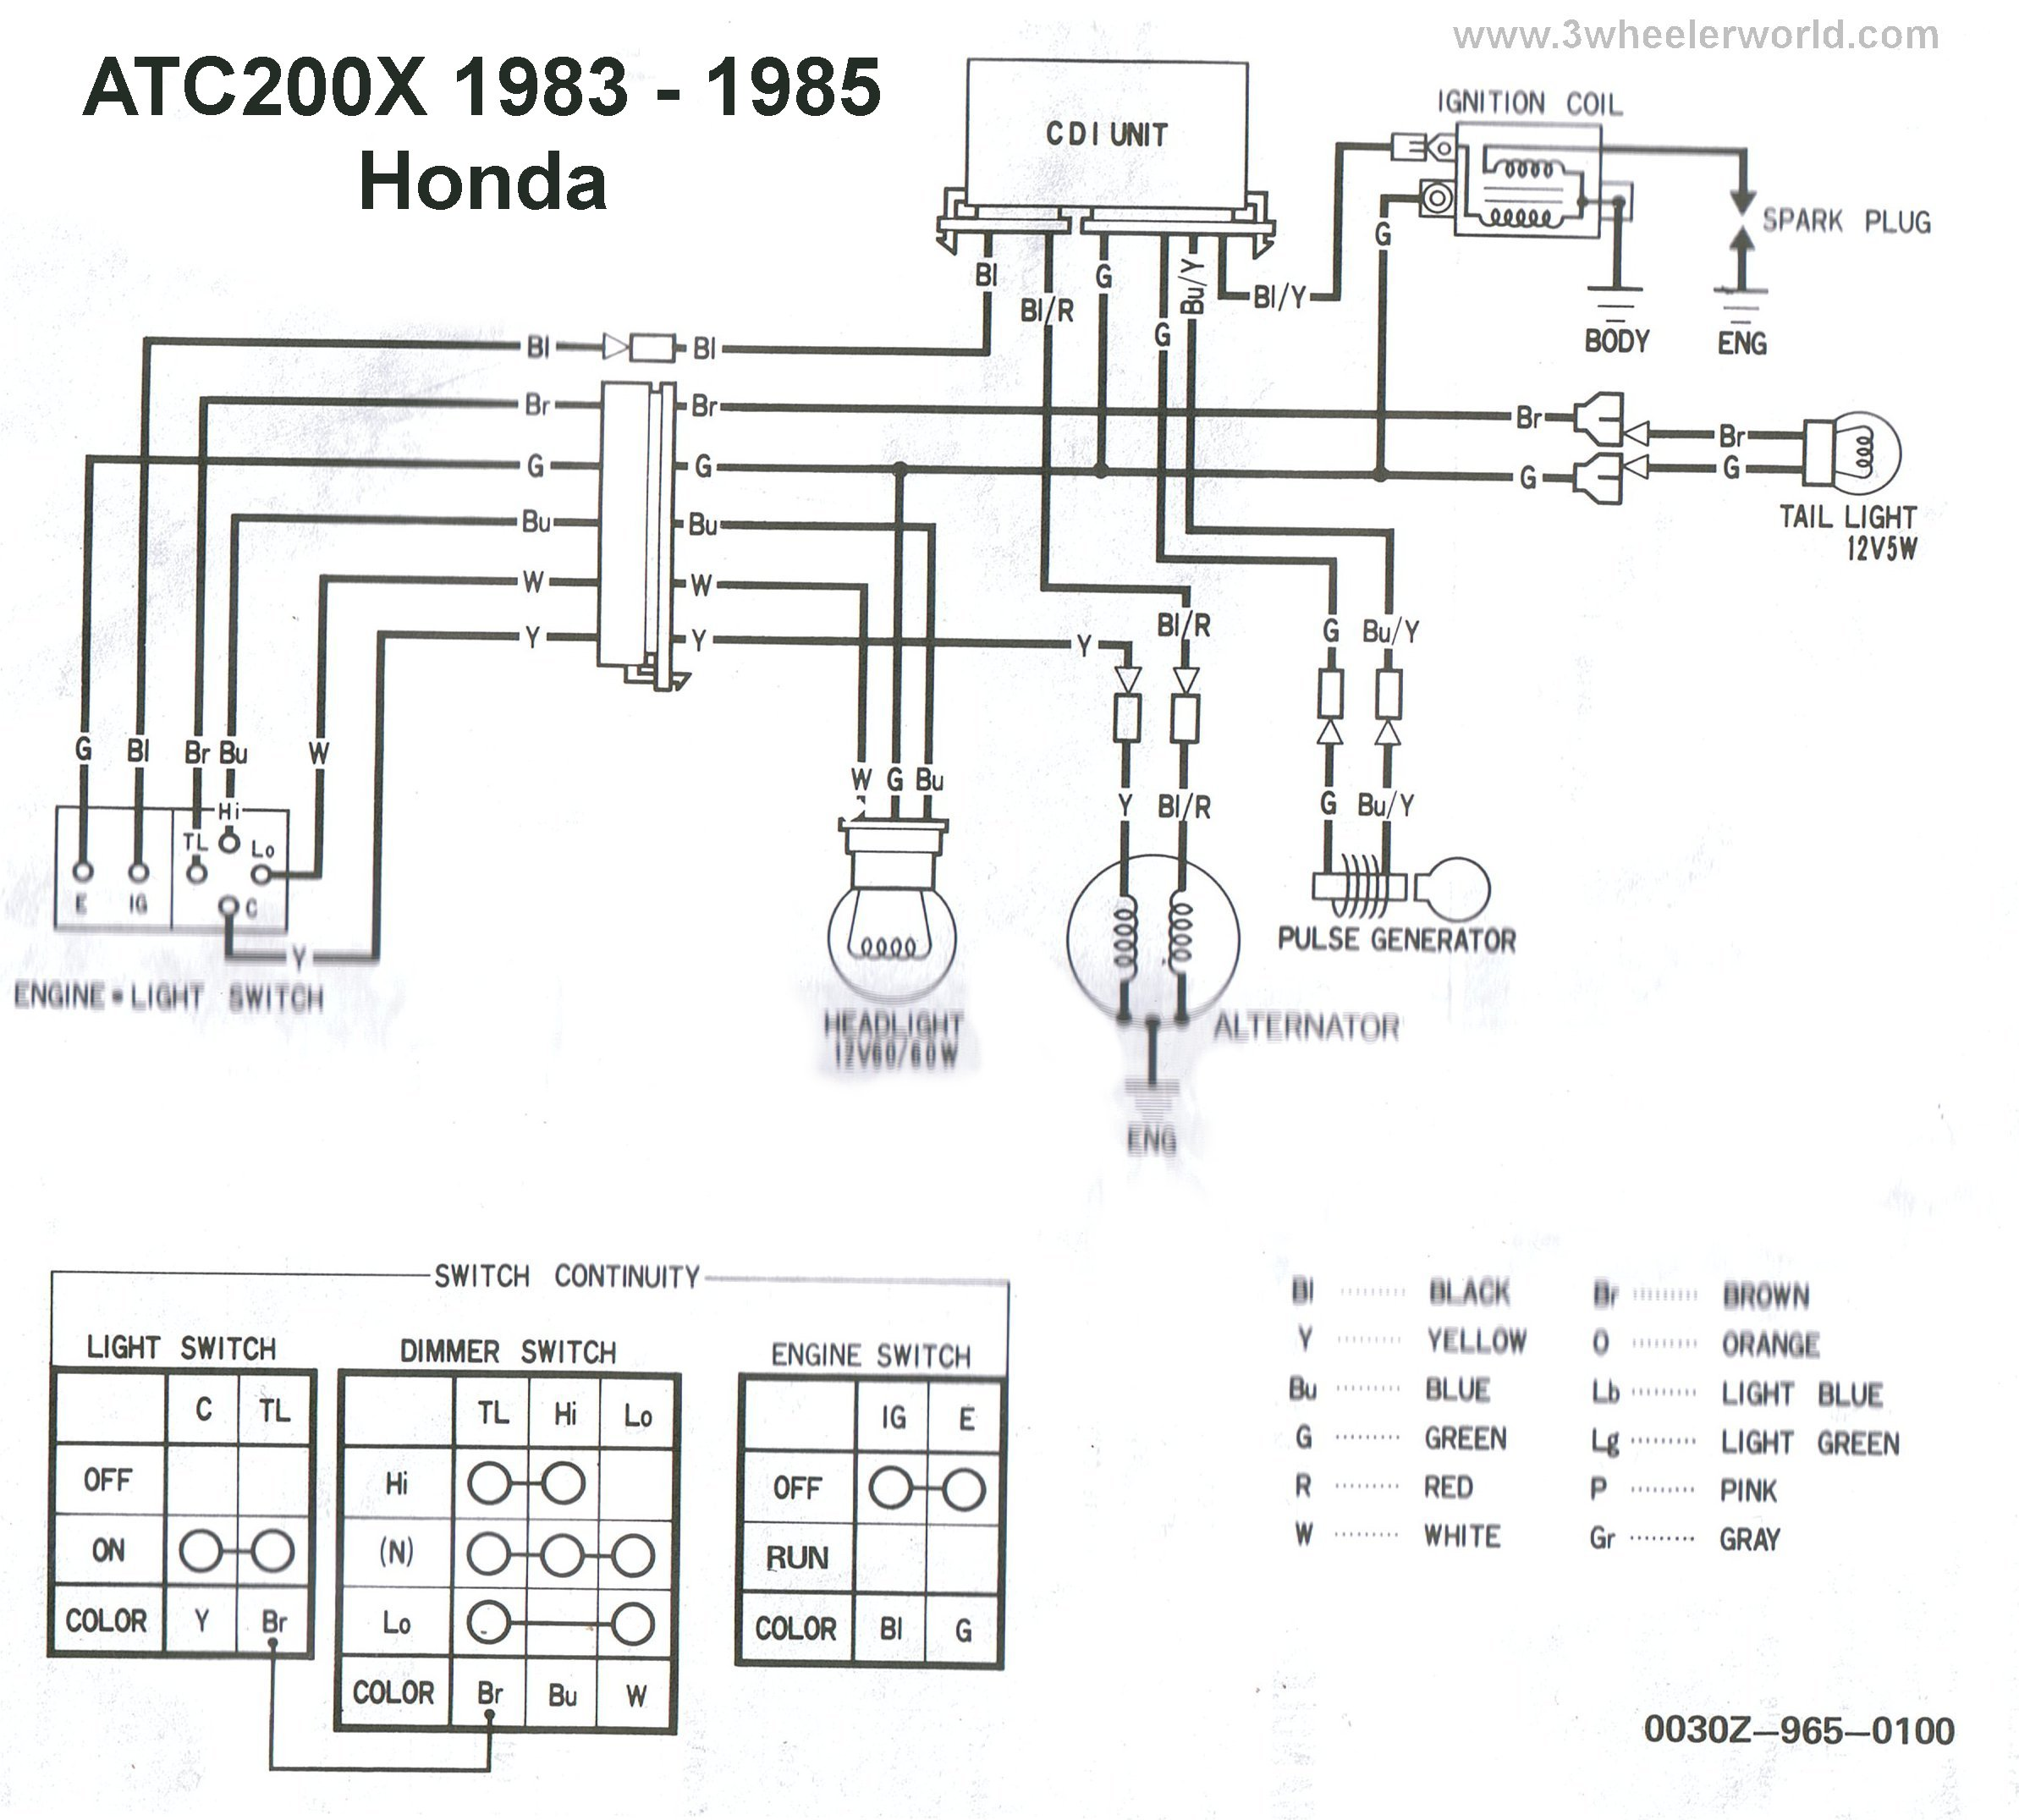 ATC200Xx83Thru85HM 1983 honda atc 70 wiring diagram wiring diagram and schematic design  at crackthecode.co